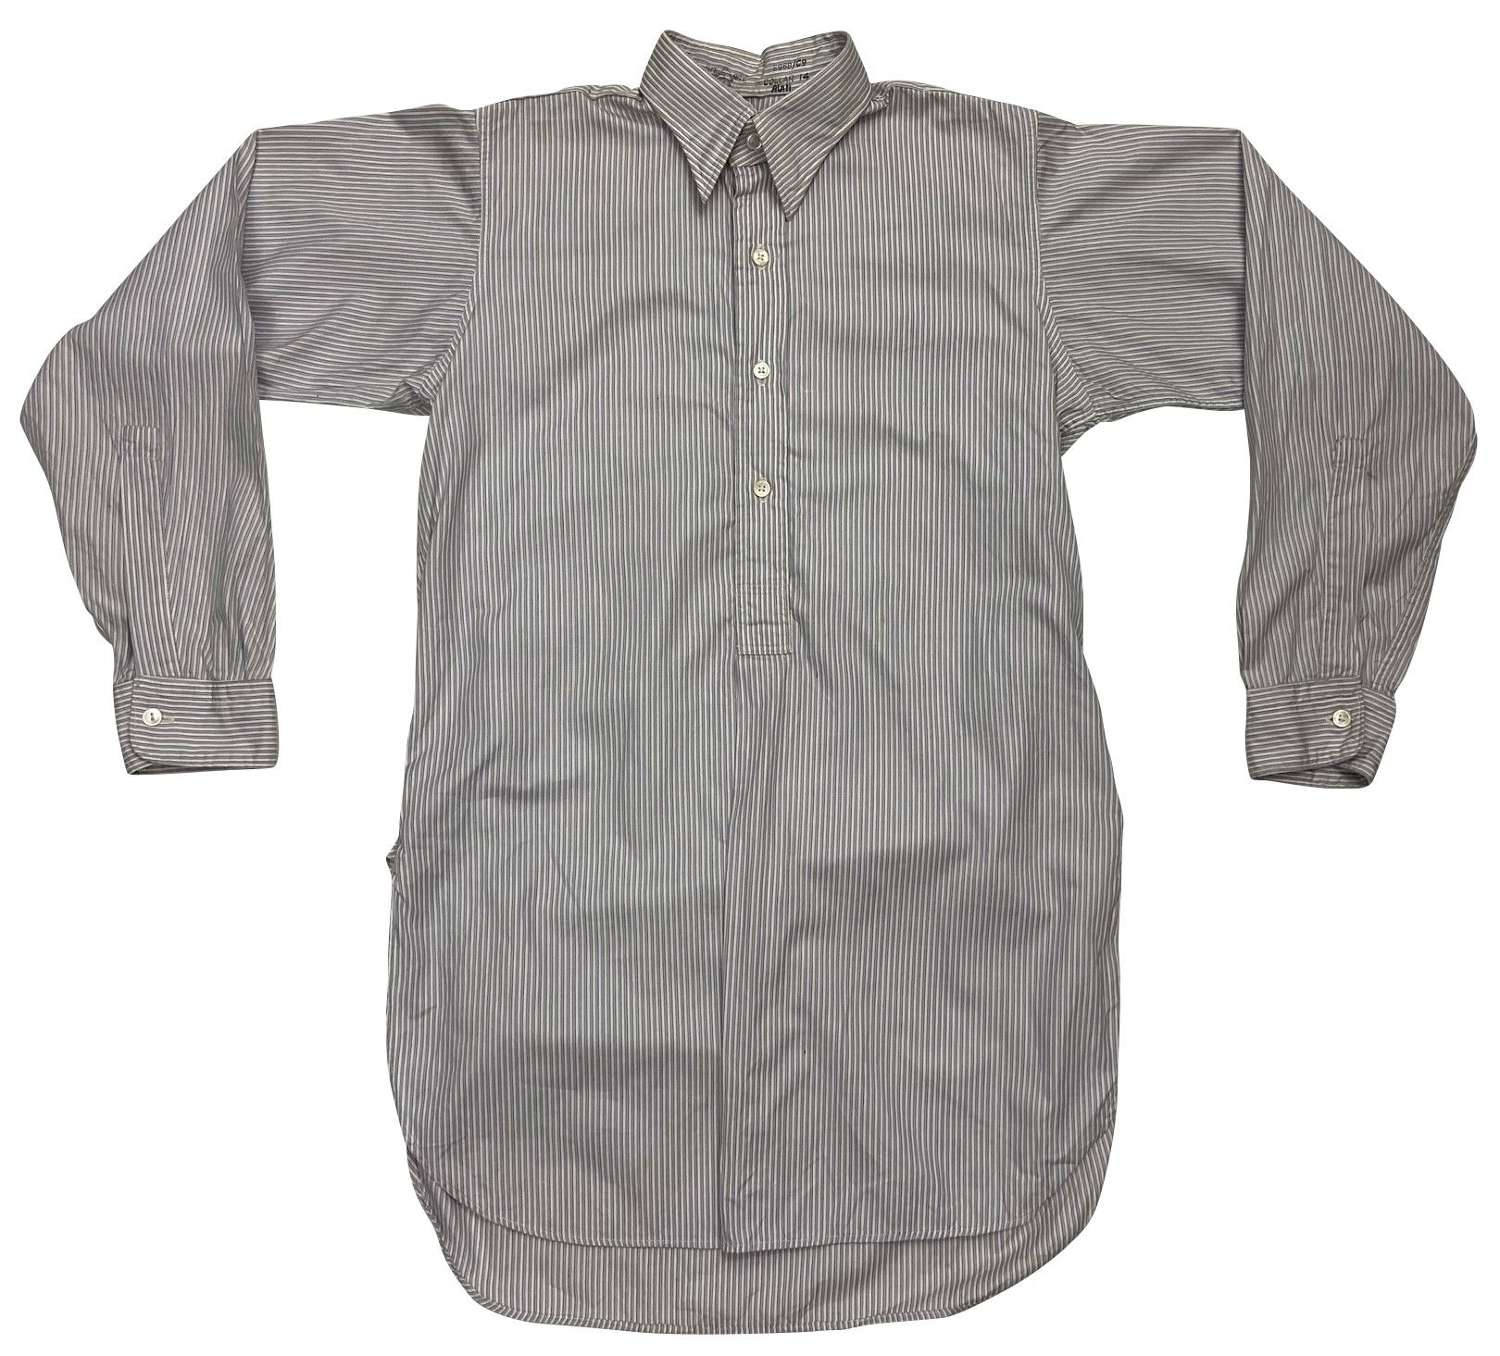 Original 1940s Men's Collared Shirt by 'Sitrite'